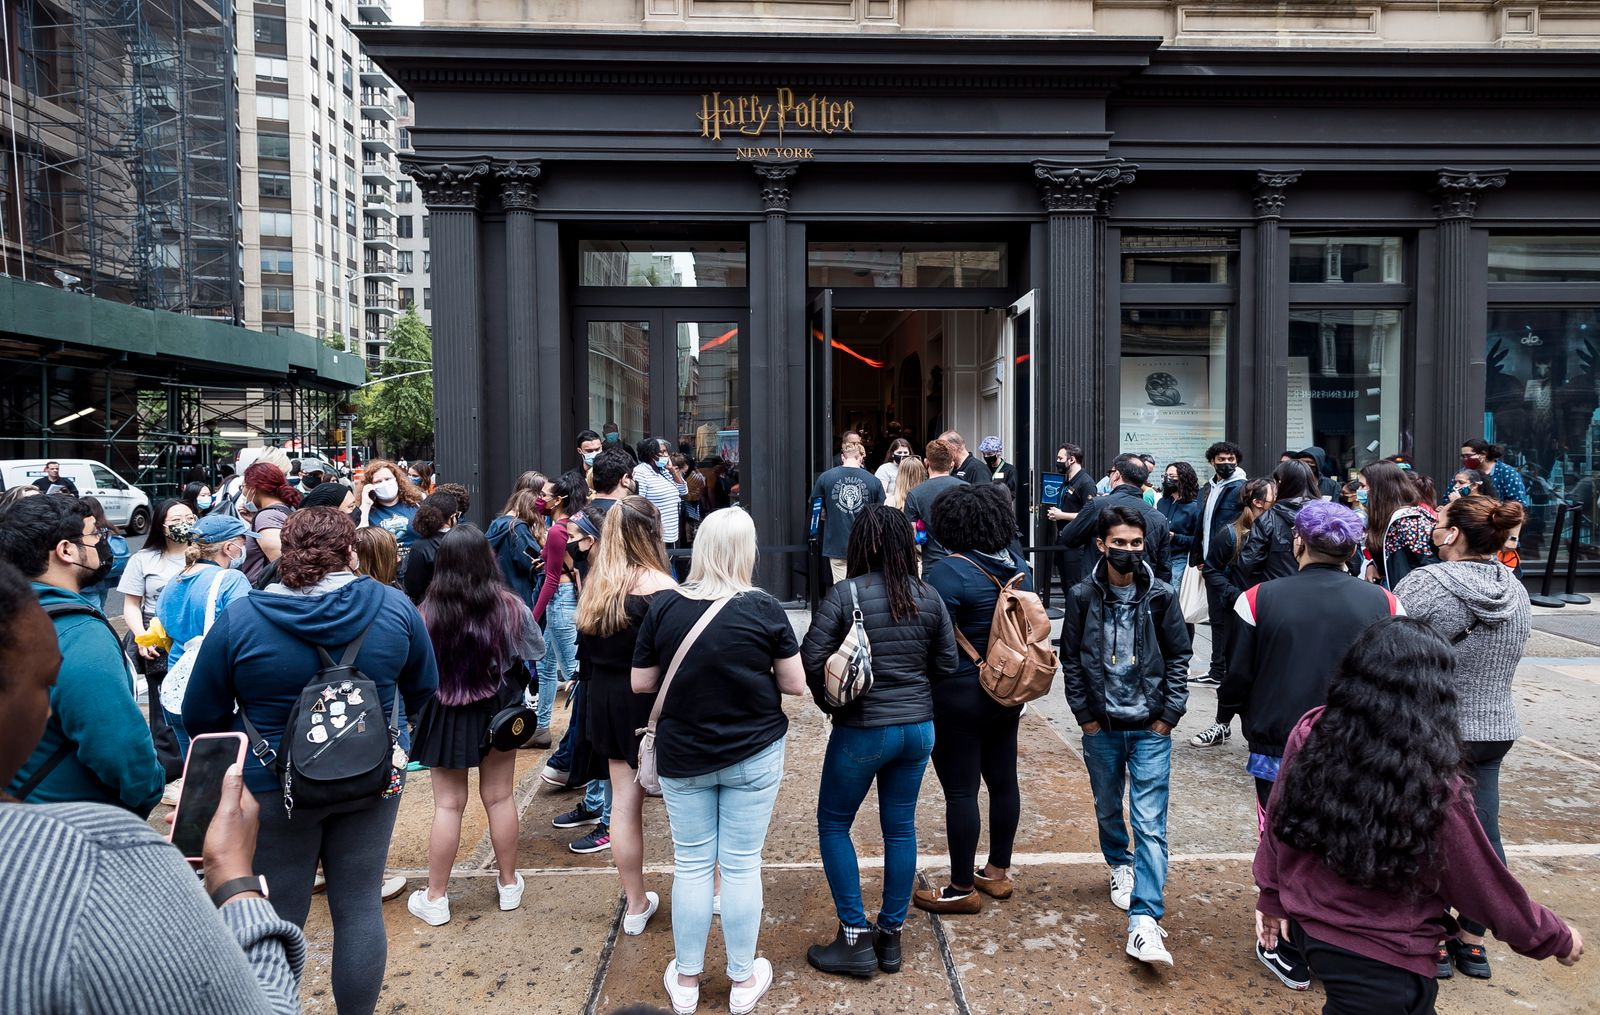 Harry Potter flagship store opens in New York